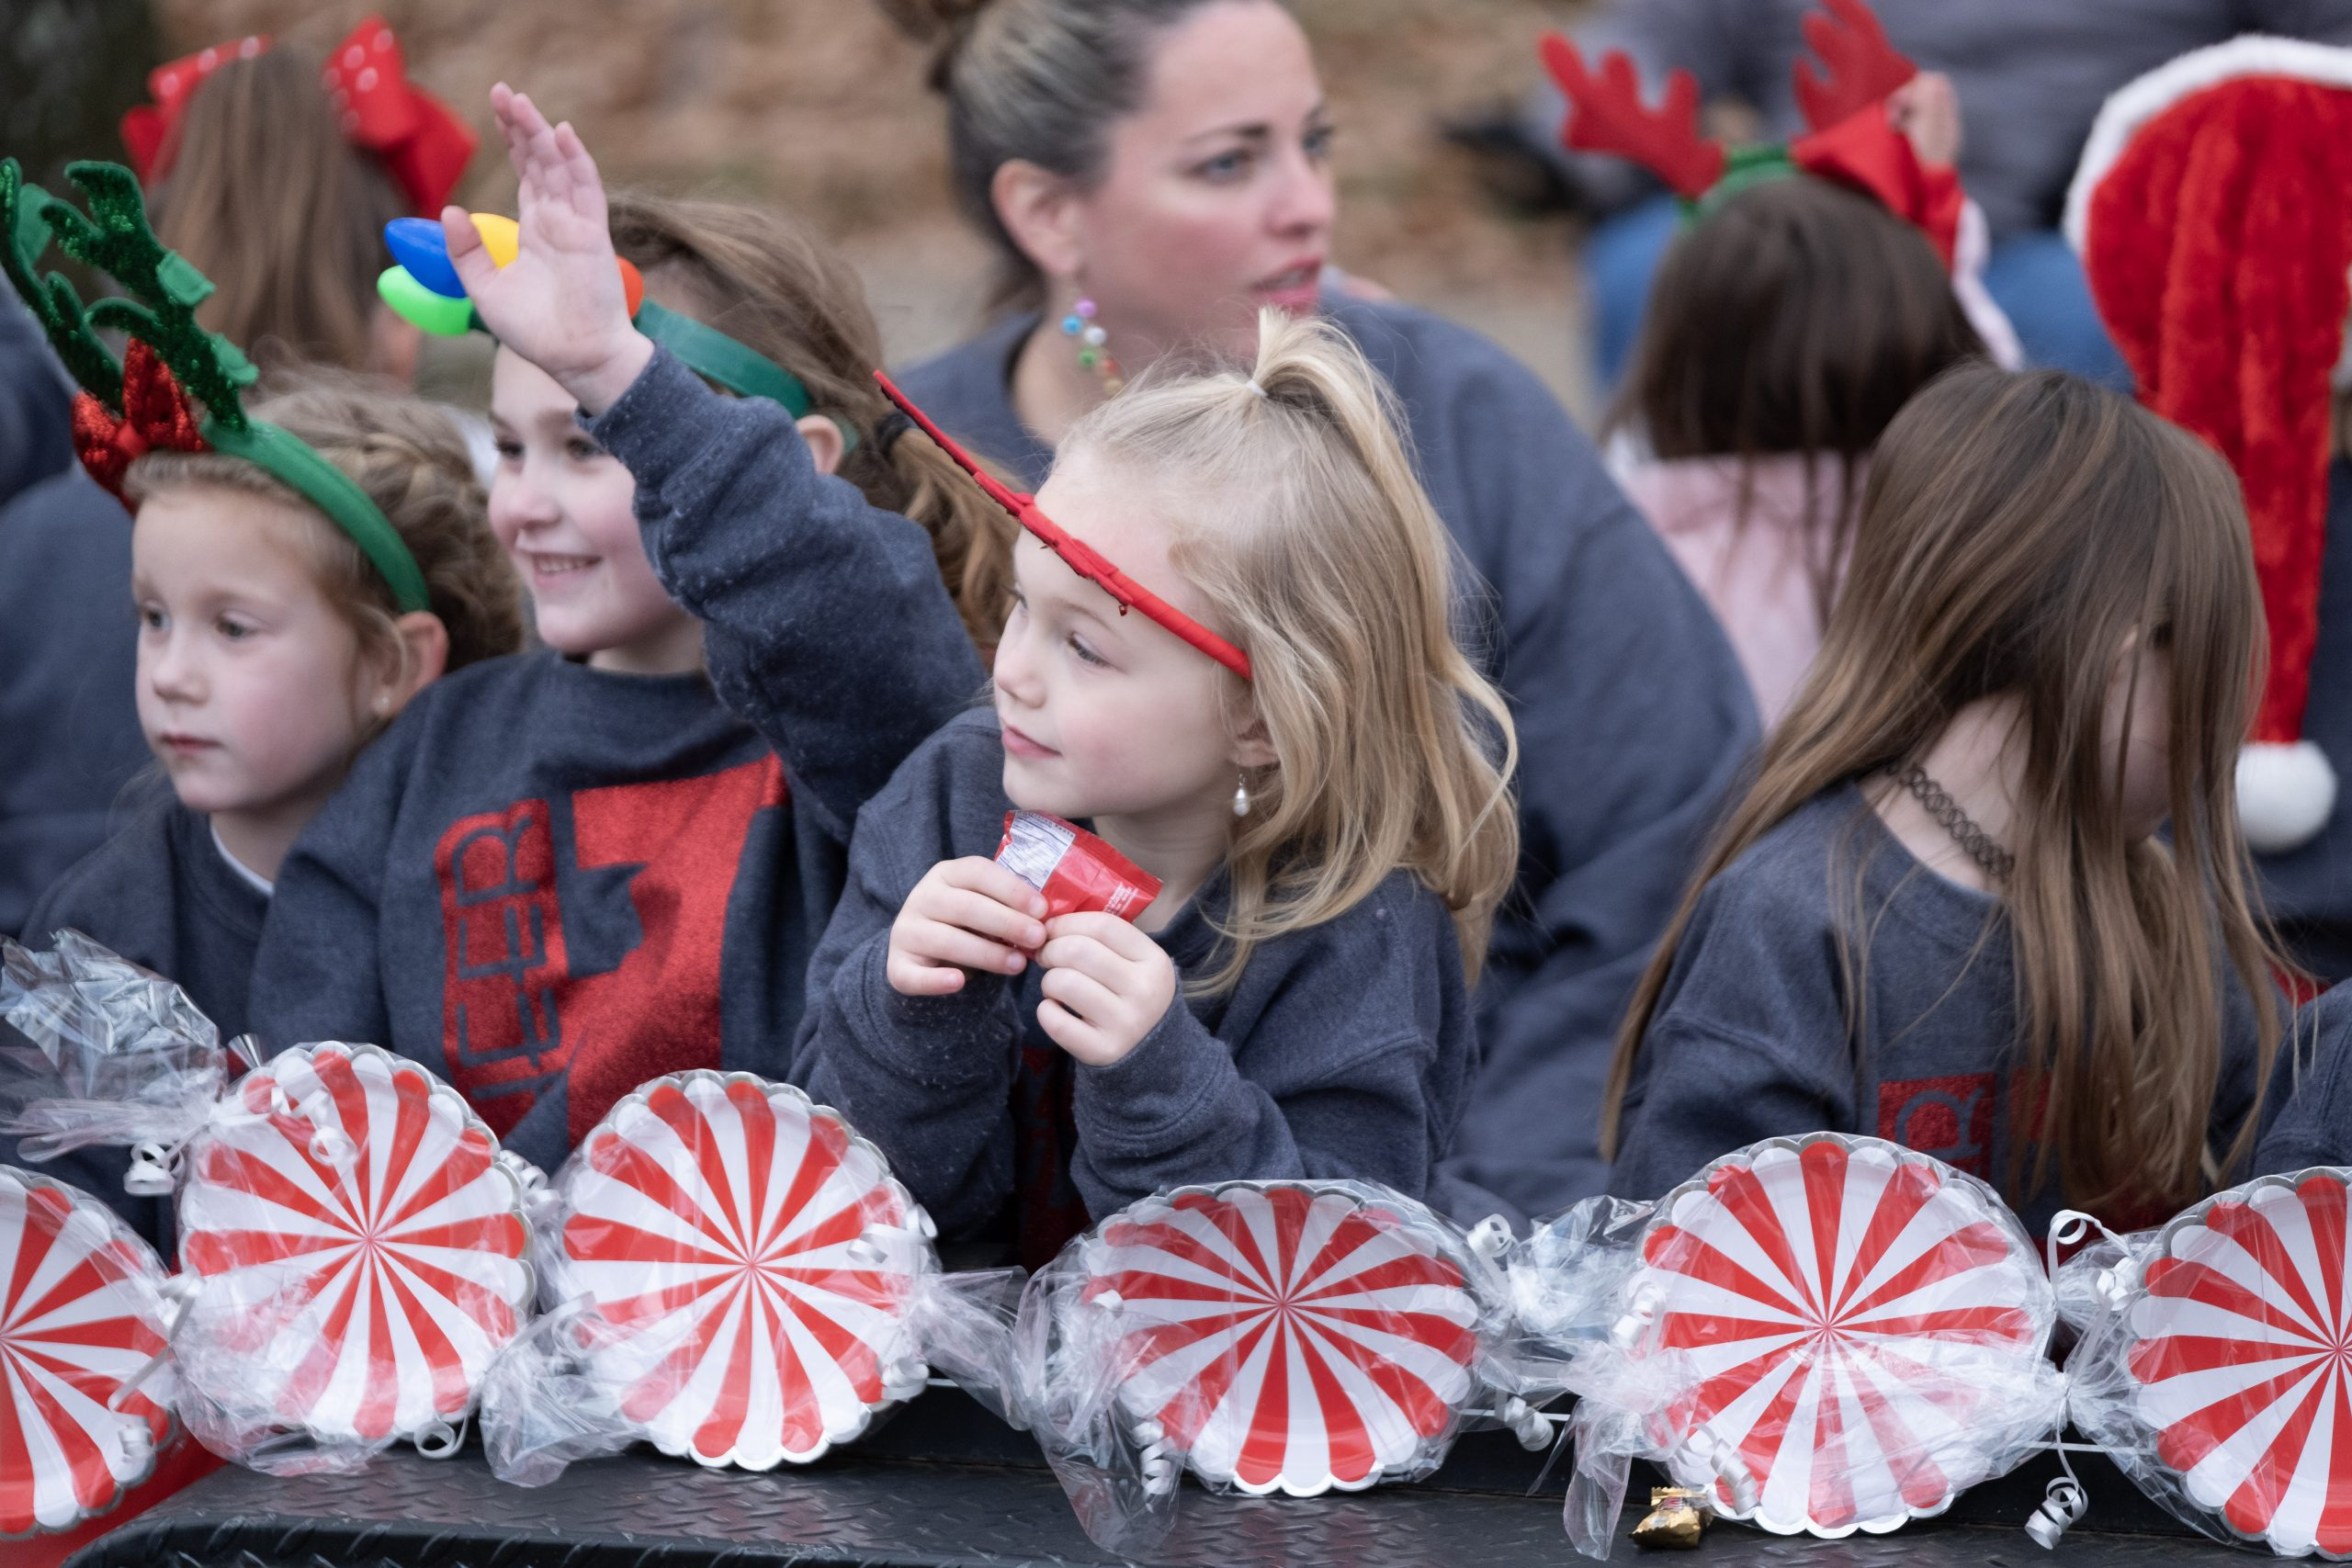 MAP: Trussville Christmas parade scheduled for Saturday, Dec. 12, 2020